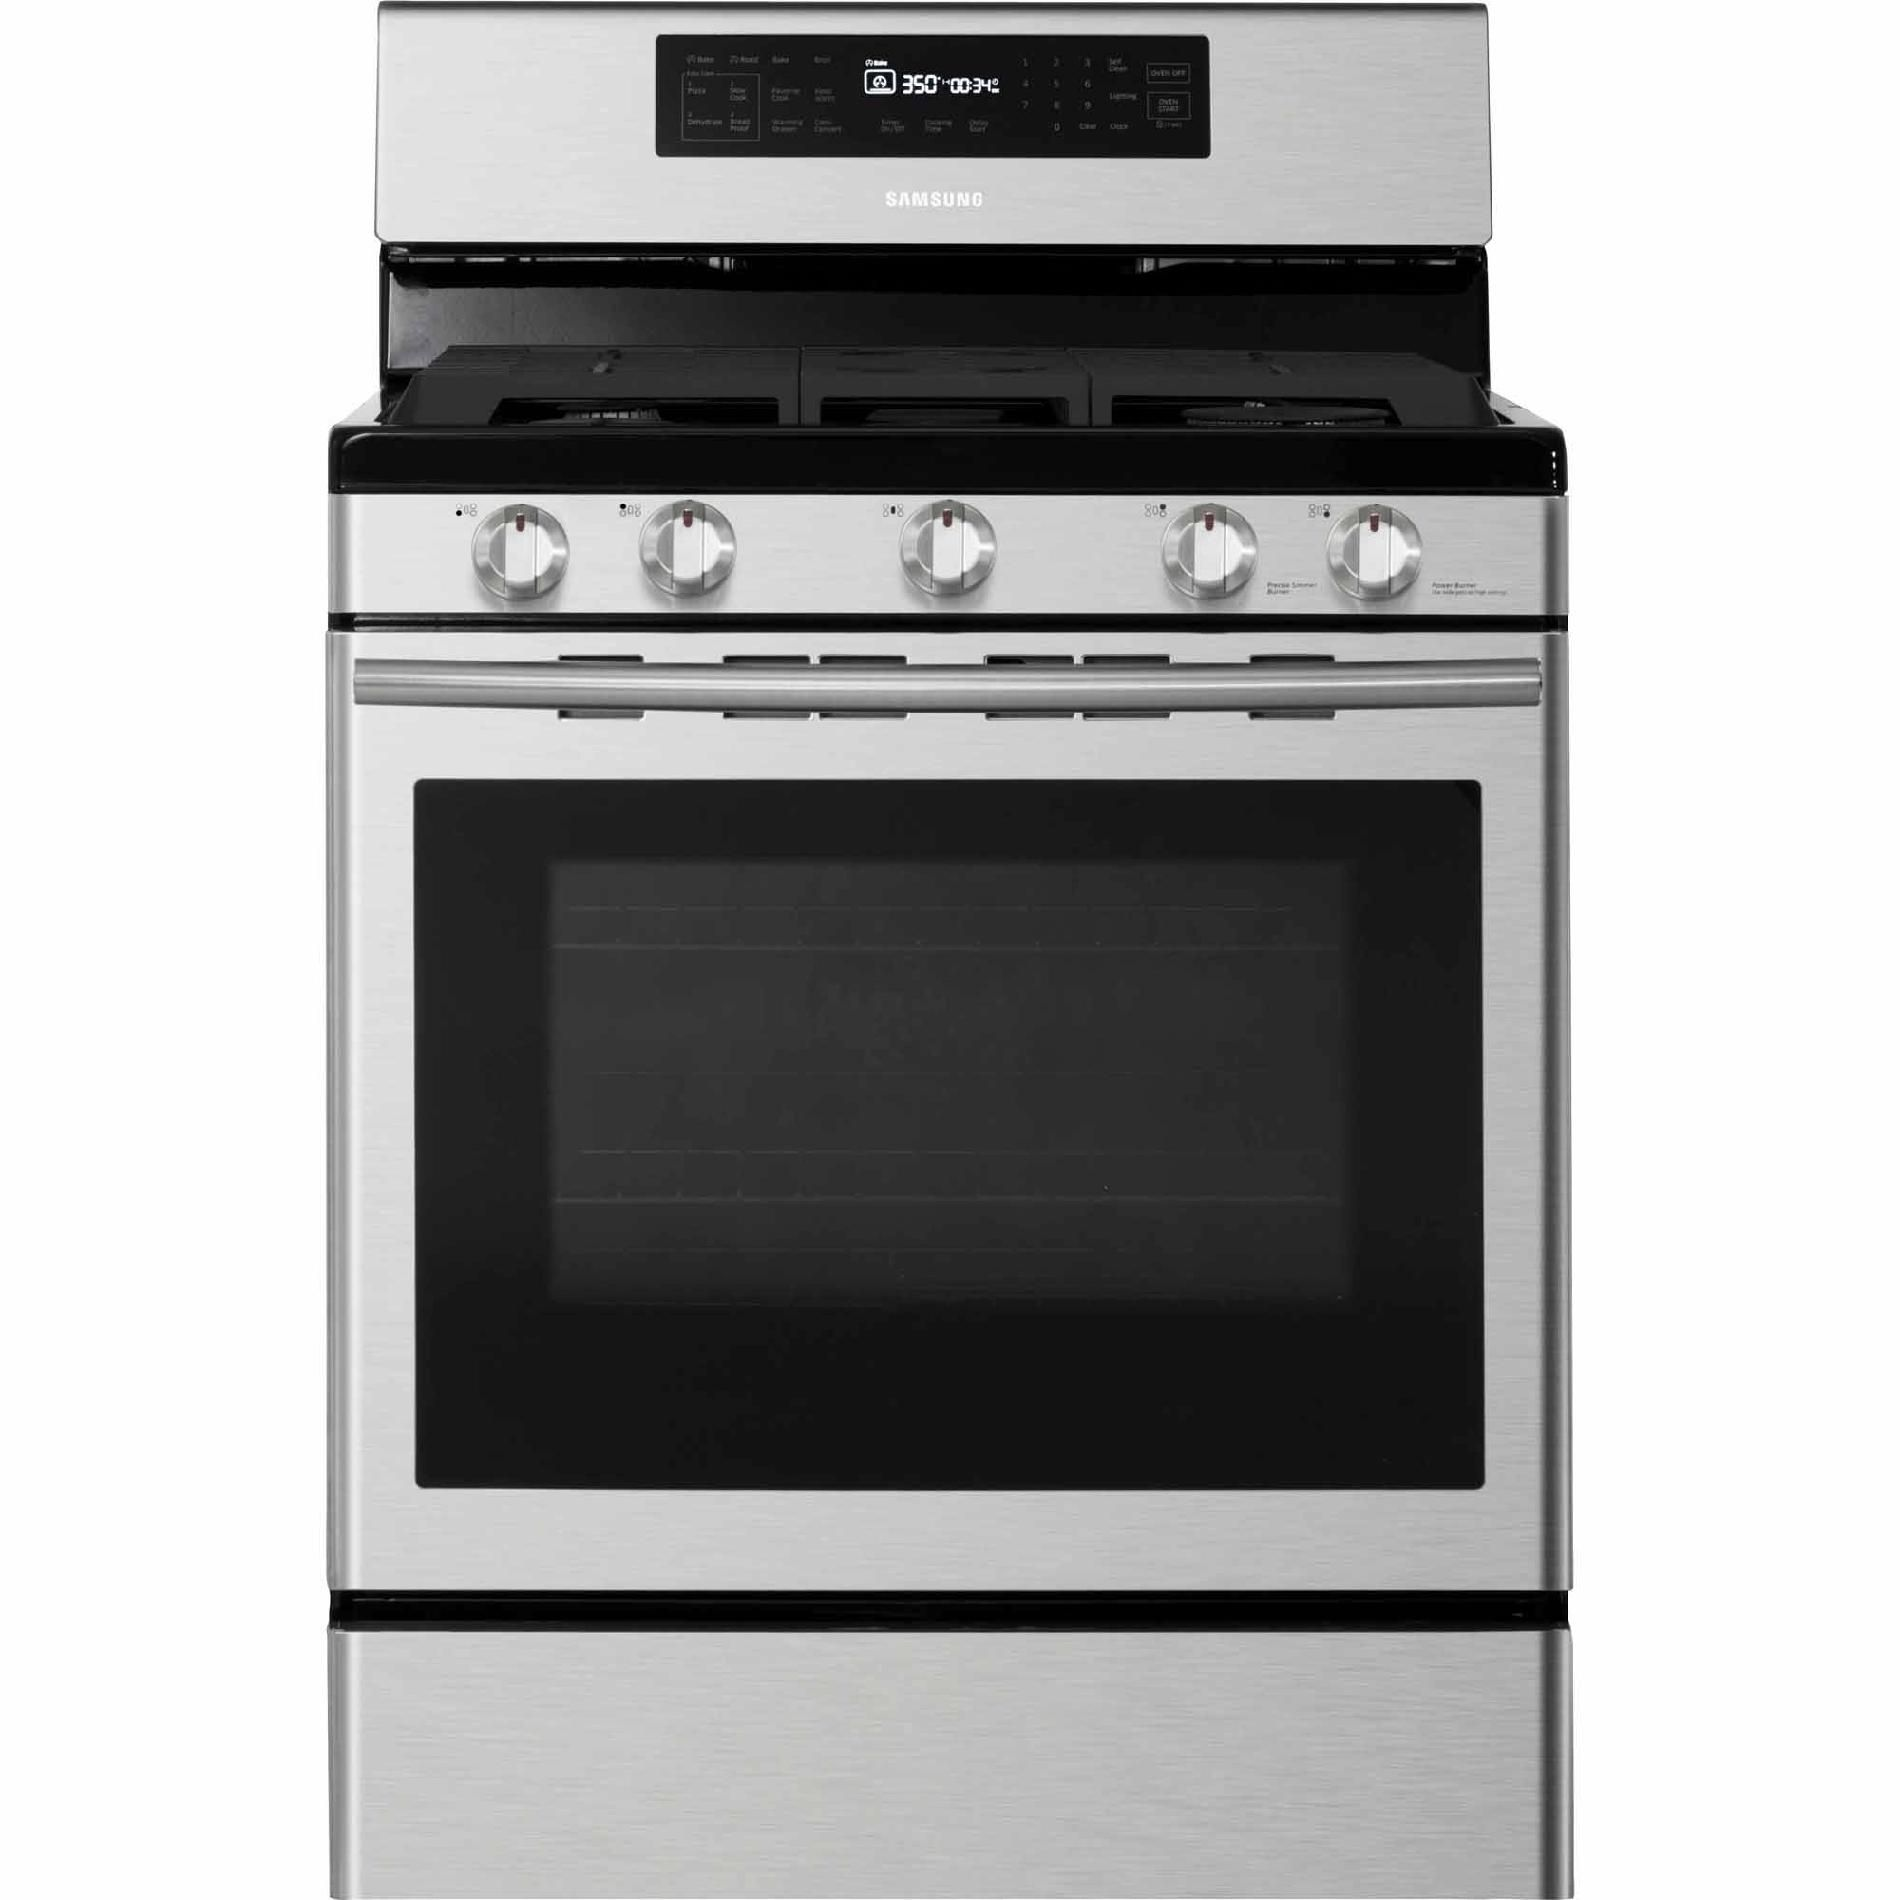 Samsung Nx58h5600ss 5 8 Cu Ft Gas Range W 5 Burner Cooktop  # Meuble Tv Sears